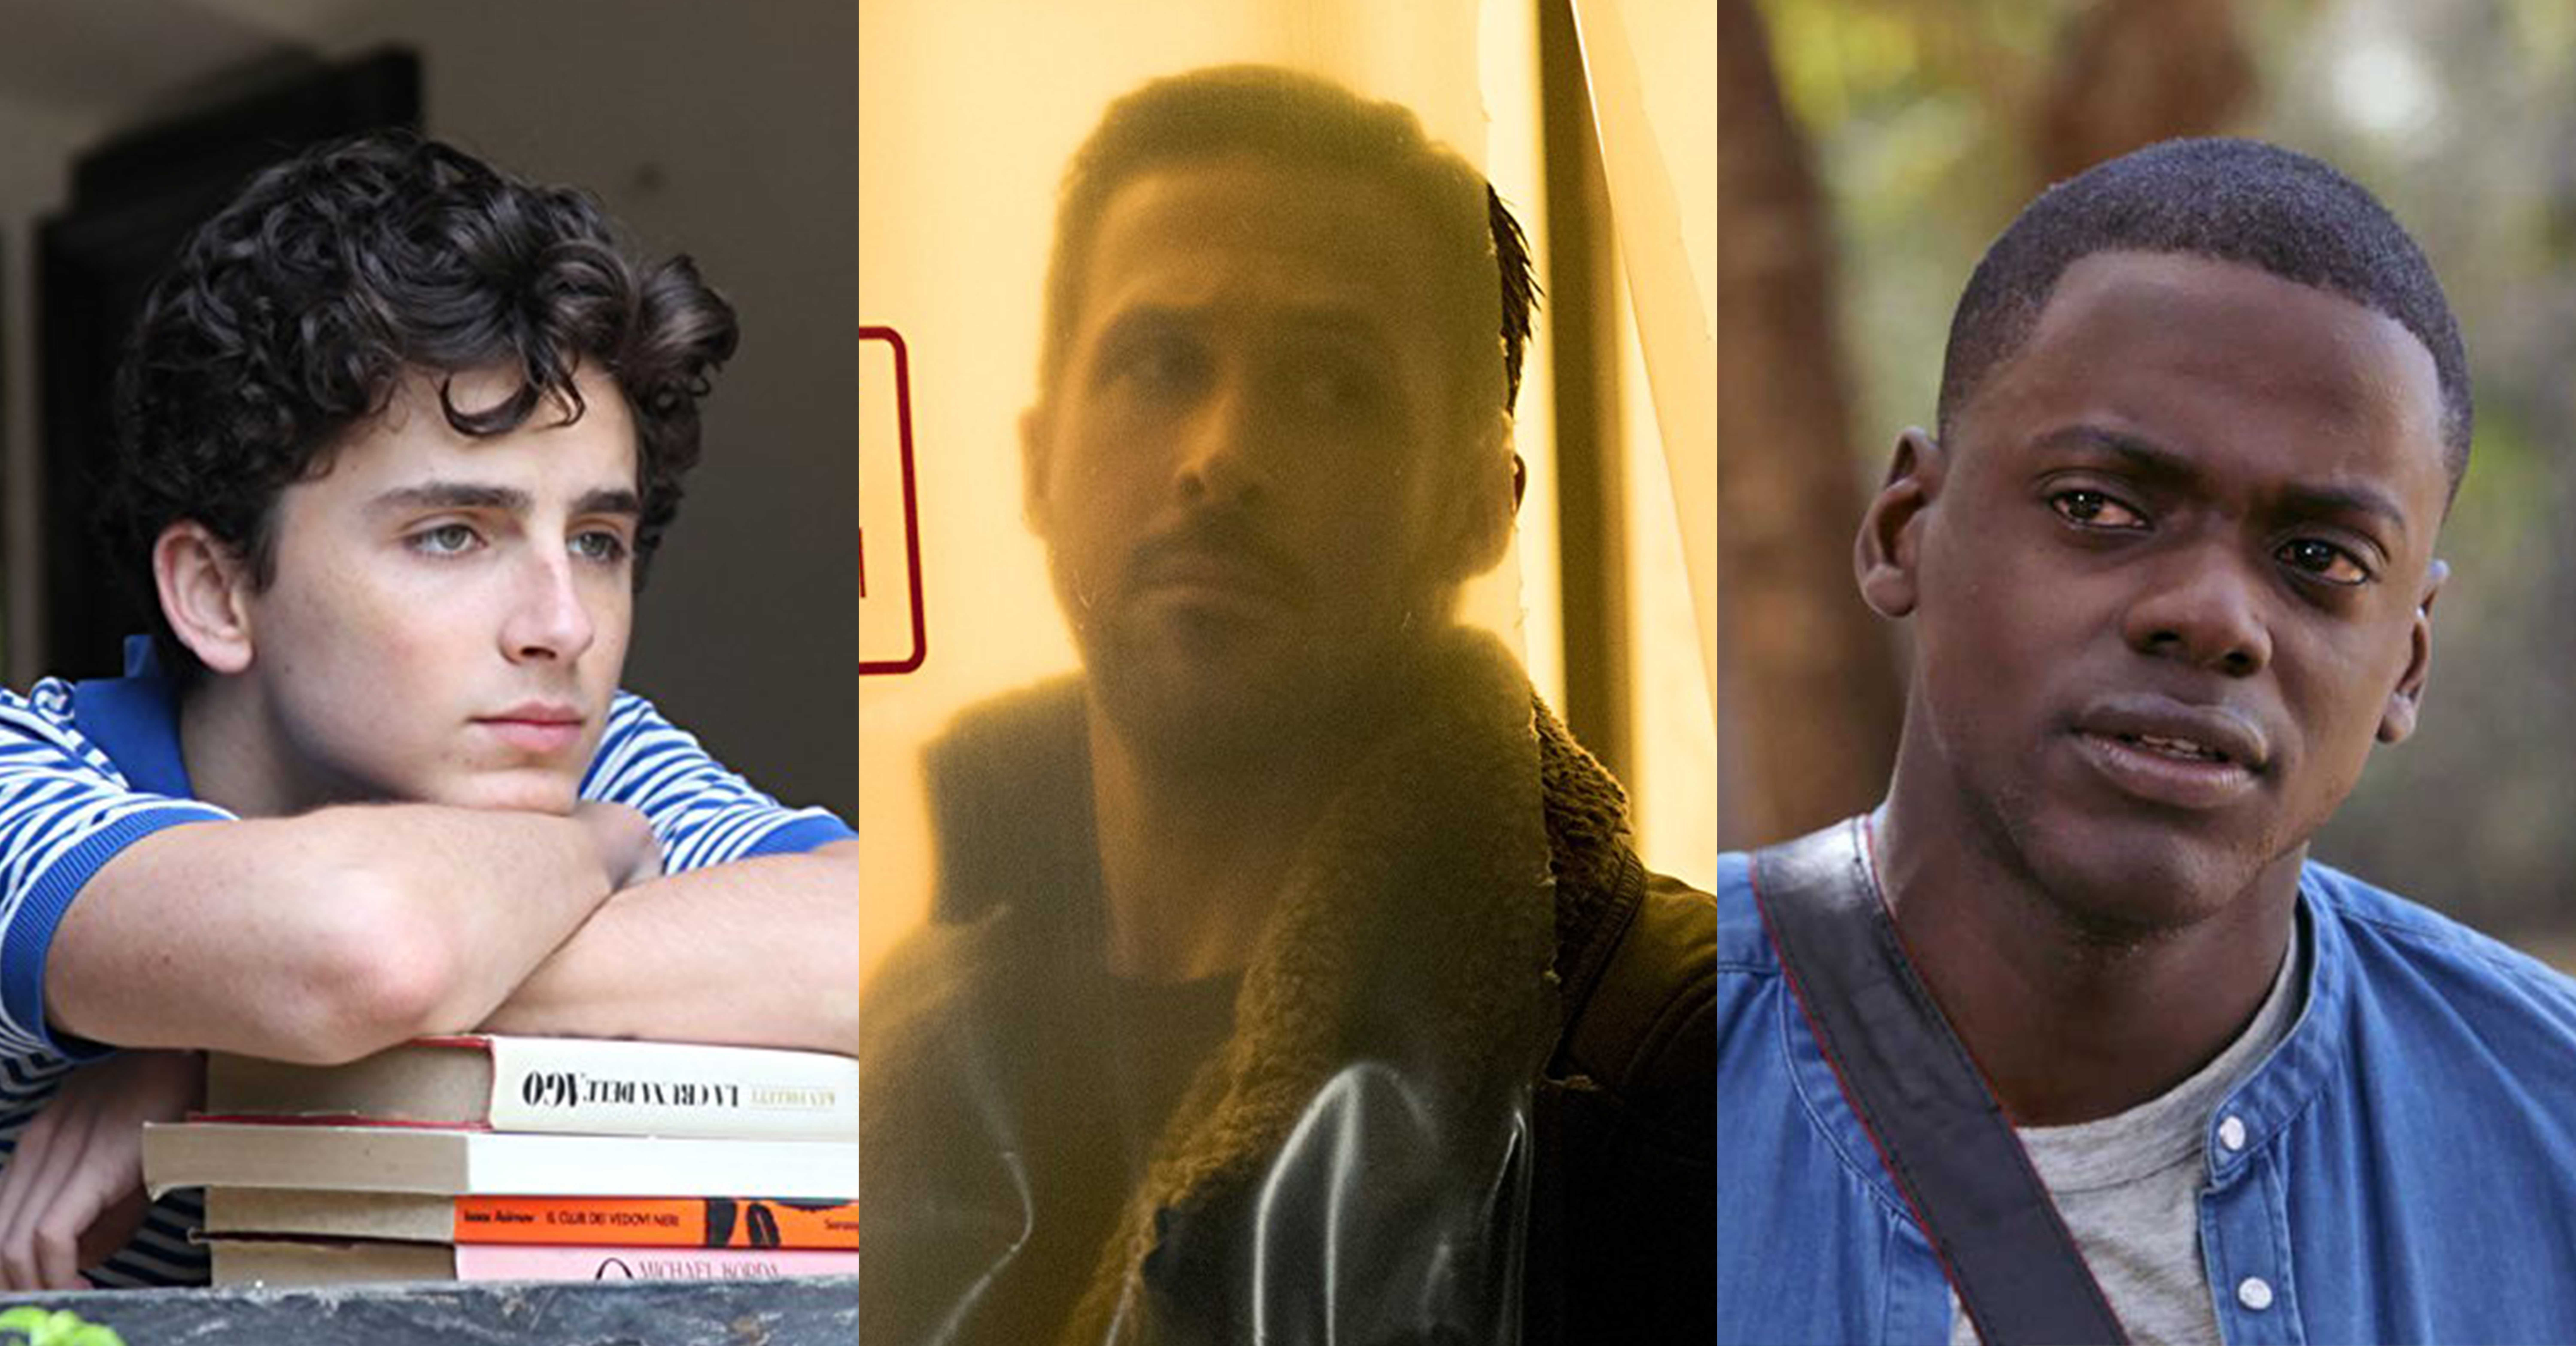 Top 10 films of 2017 make grand statements, tackle issues